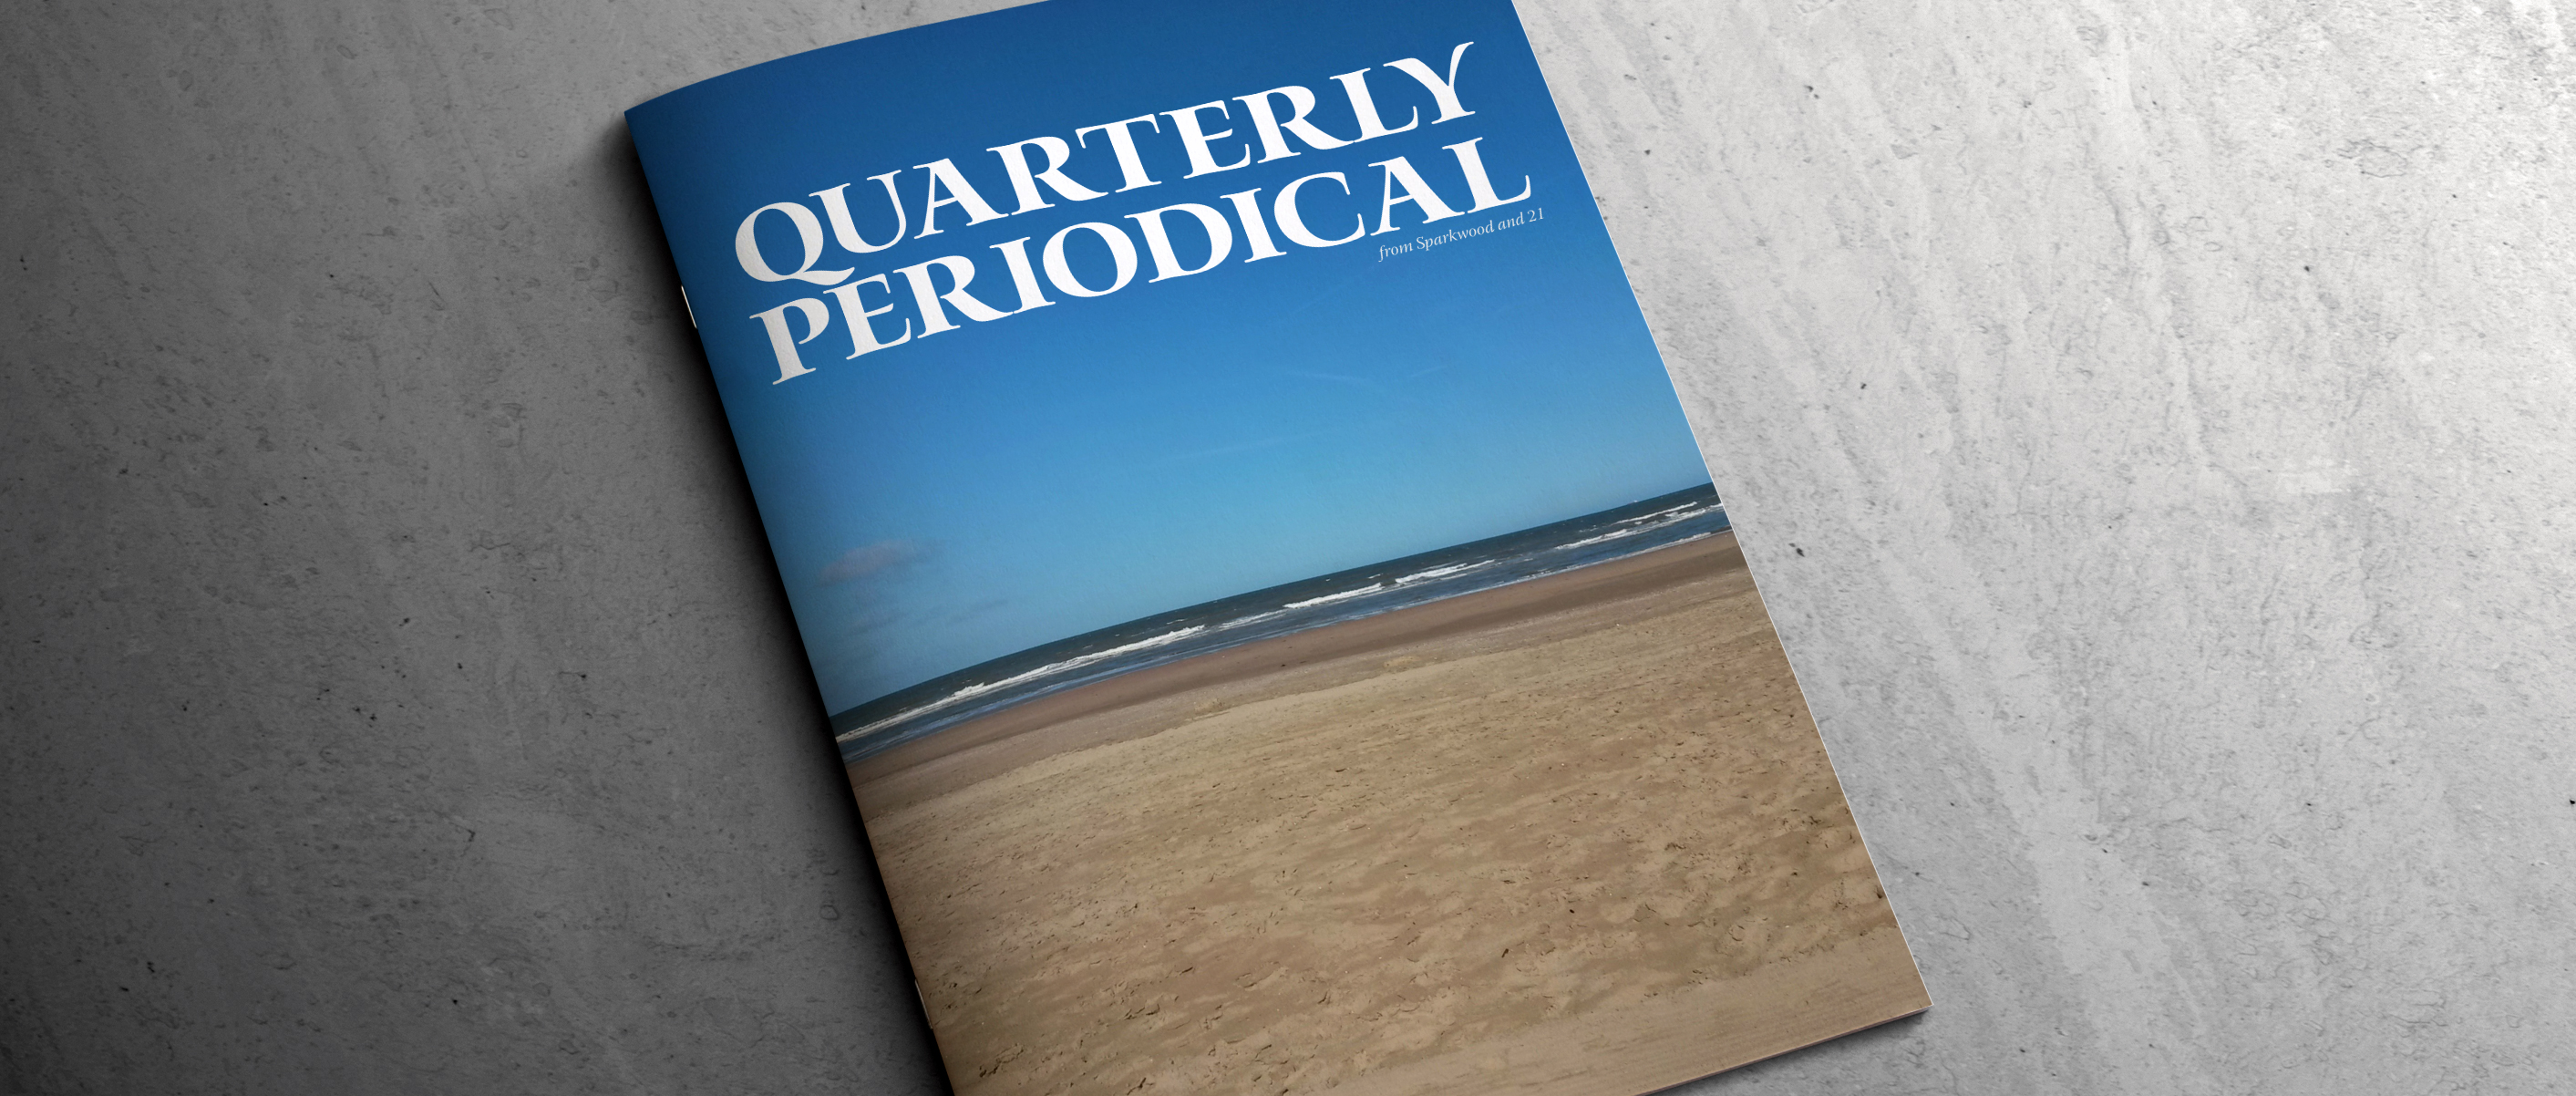 Quarterly Periodical from Sparkwood and 21